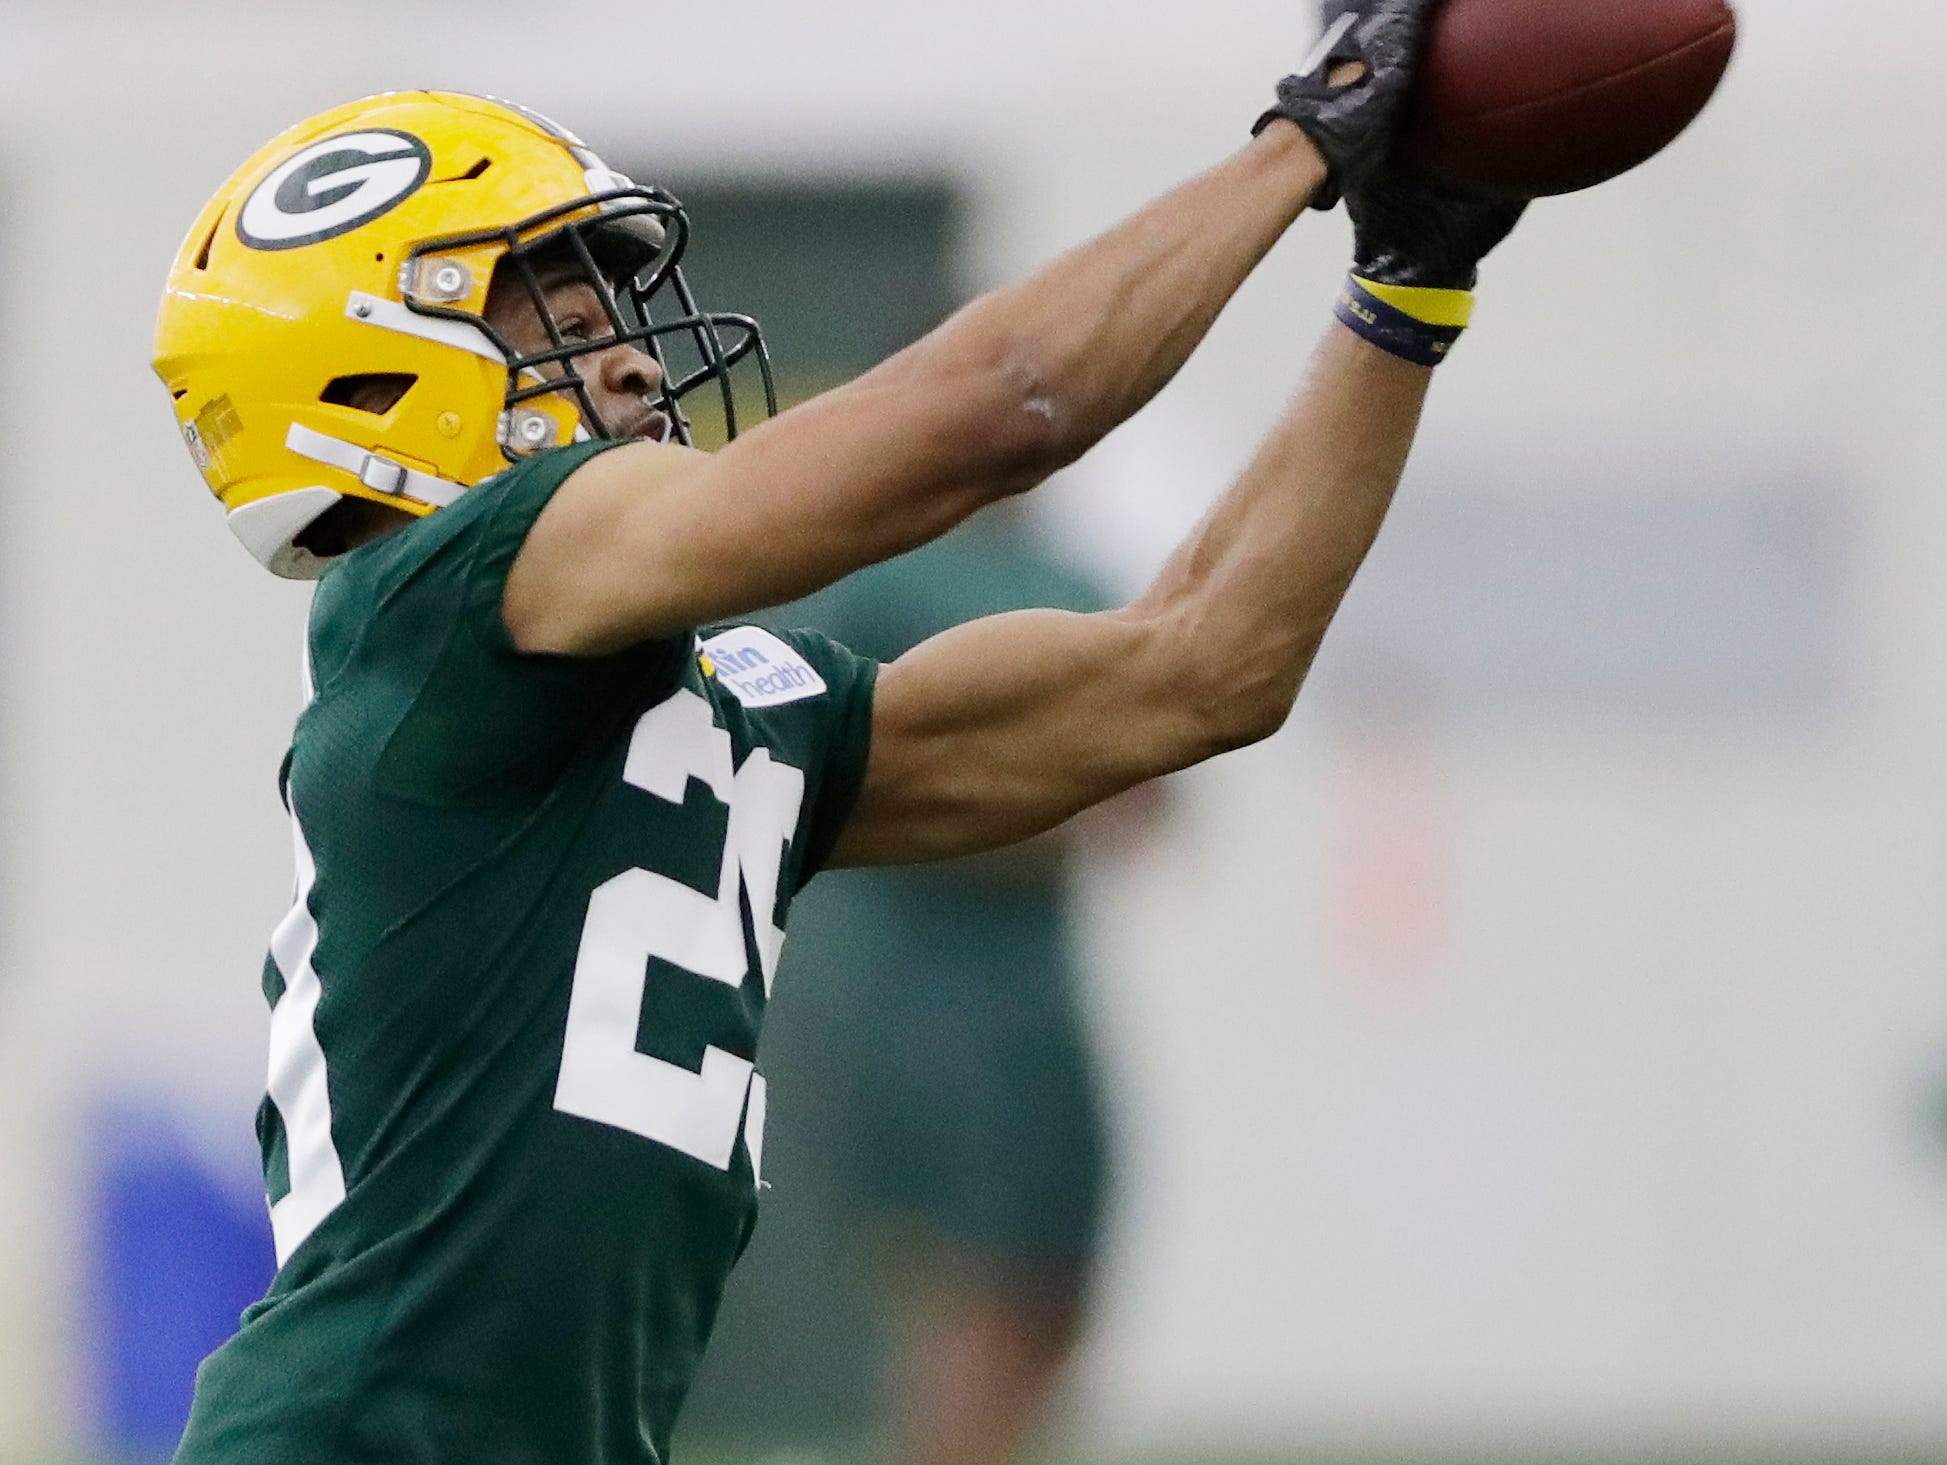 Green Bay Packers cornerback Ka'dar Hollman (29) during practice at rookie minicamp at the Don Hutson Center on Friday, May 3, 2019 in Ashwaubenon, Wis.Adam Wesley/USA TODAY NETWORK-Wis